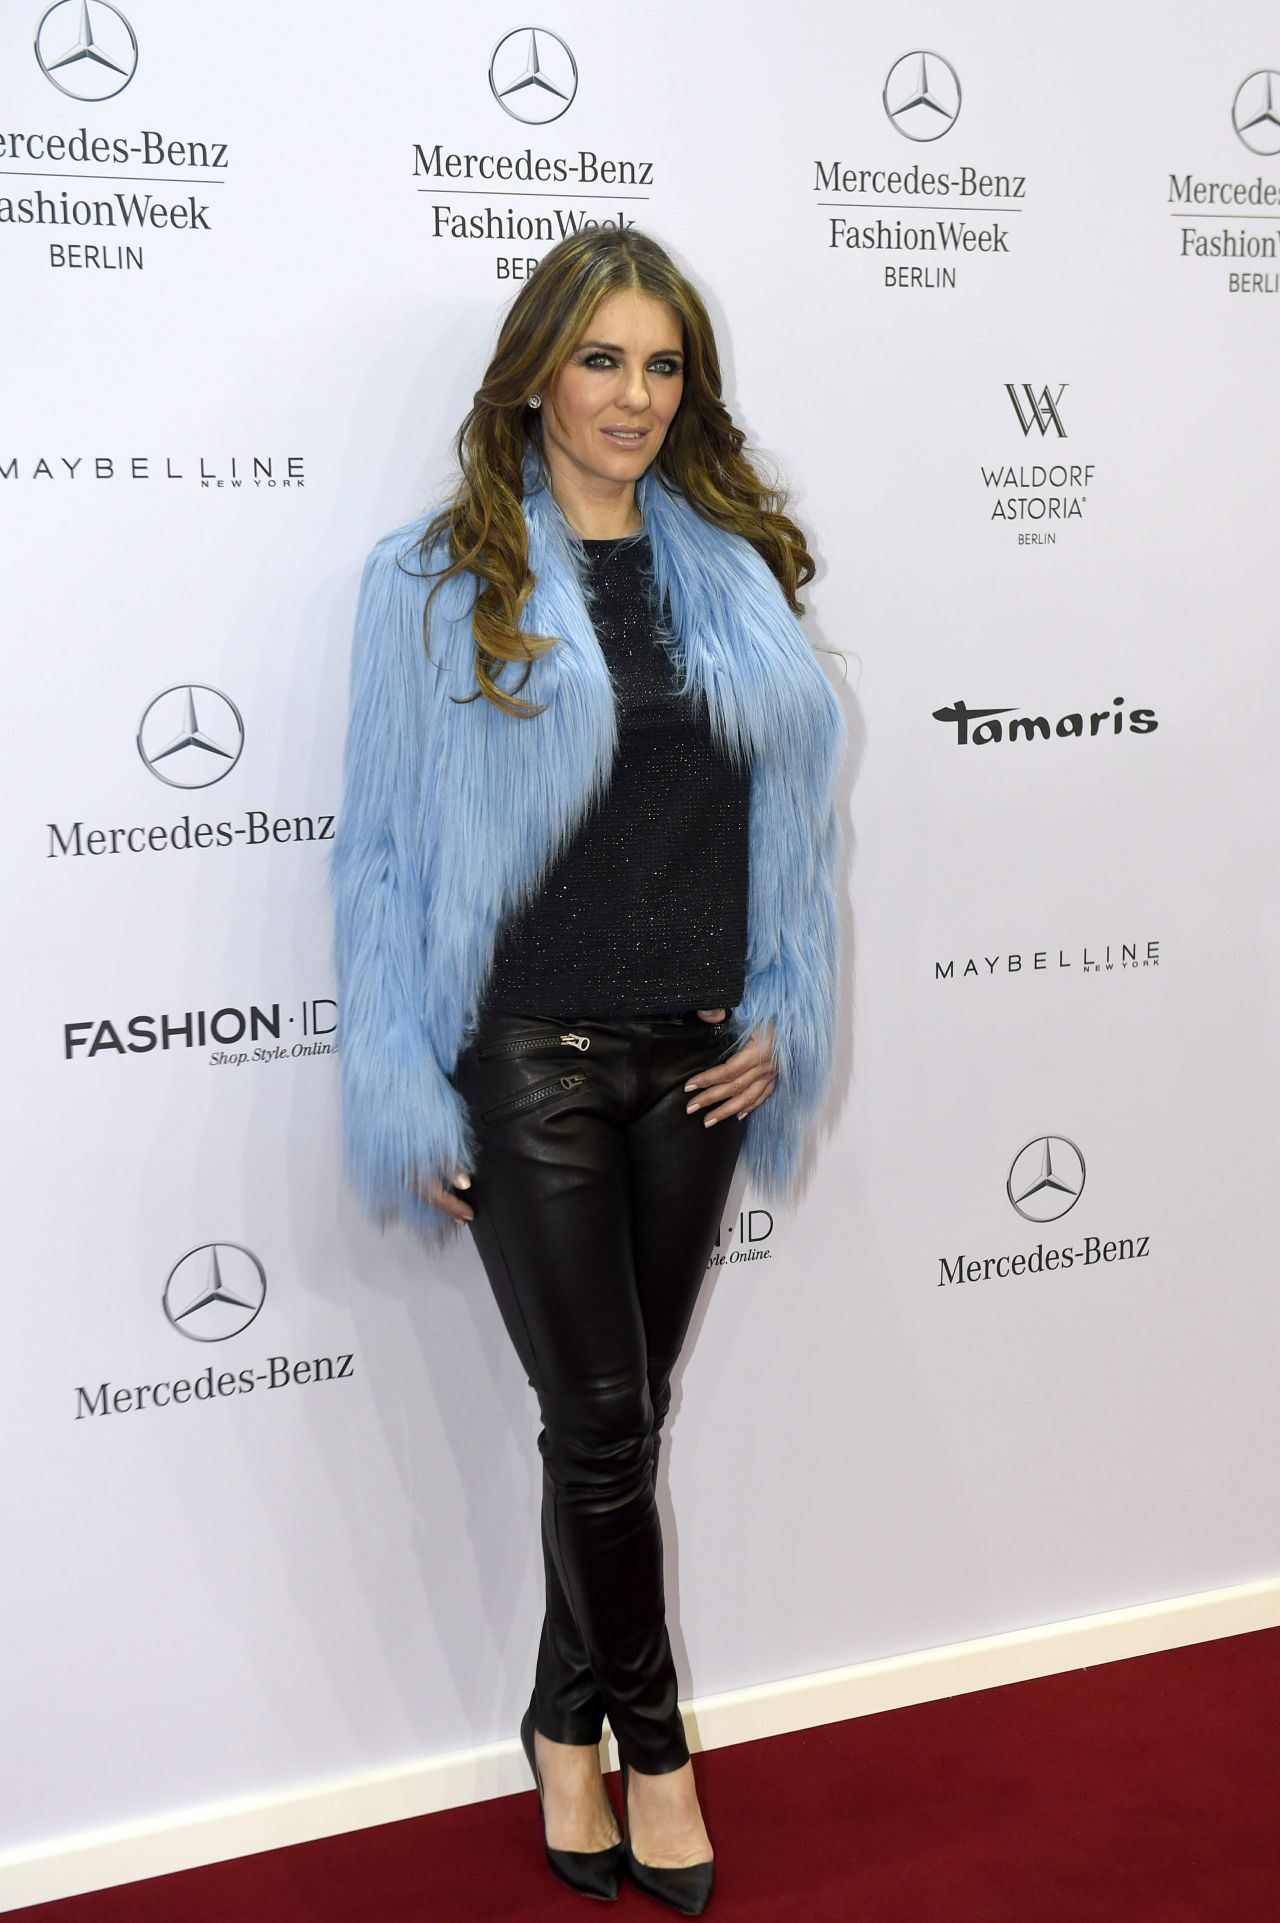 Elizabeth Hurley Style - Marc Cain Show at the Mercedes-Benz Fashion Week January 2015